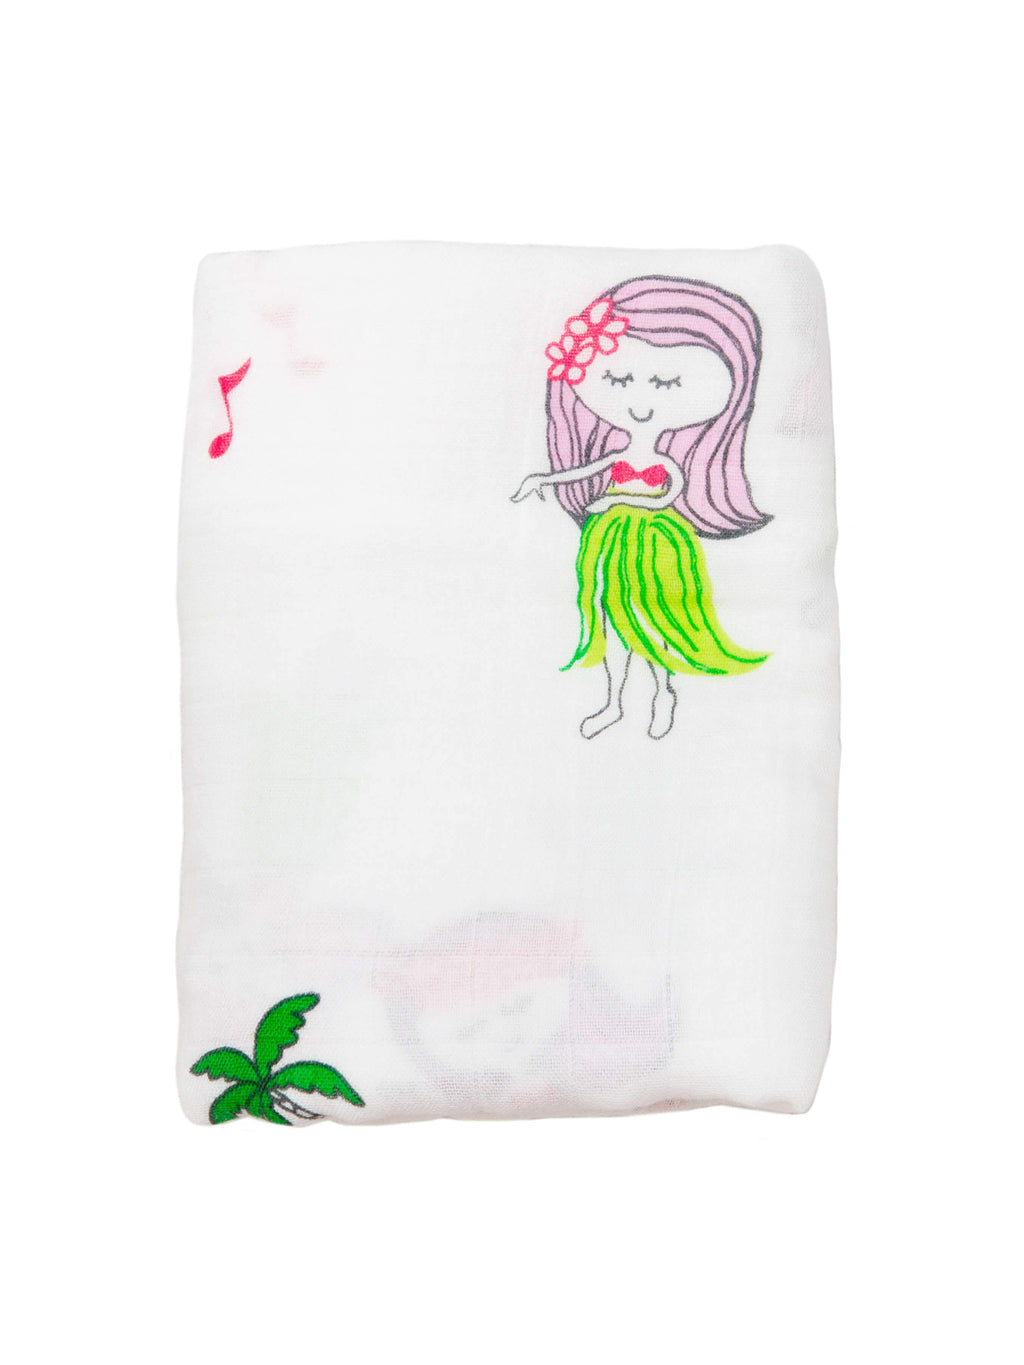 COCO MOON Swaddle Blanket | Hula Girls